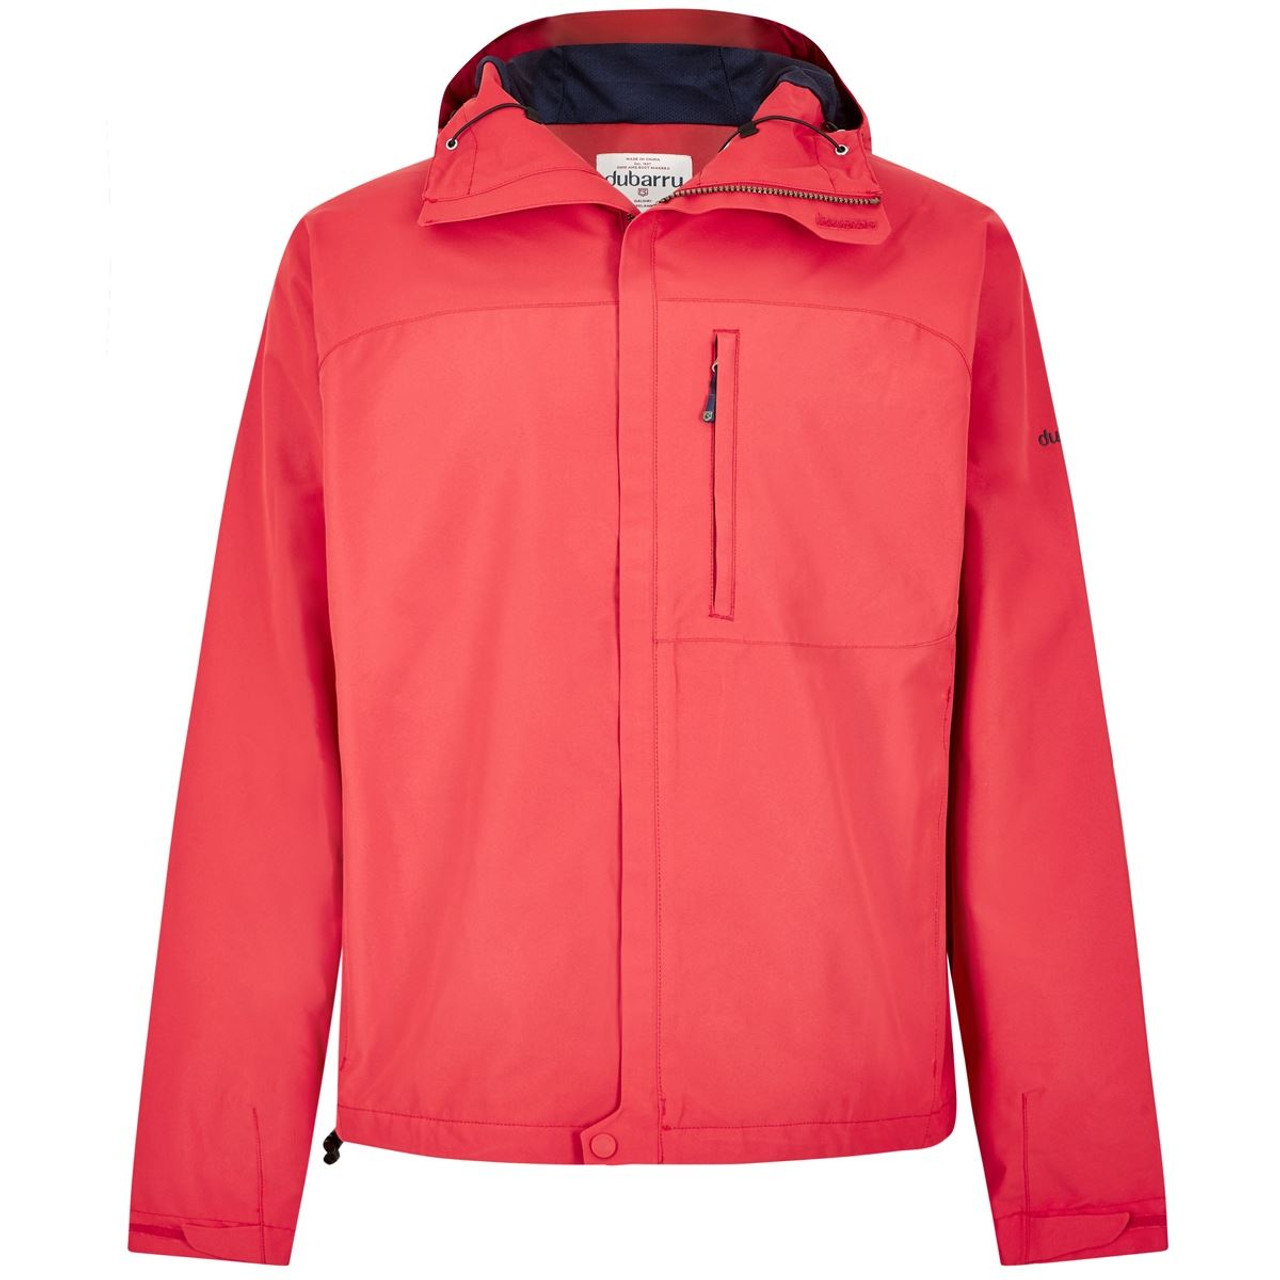 Dubarry Ballycumber Jacket in Poppy